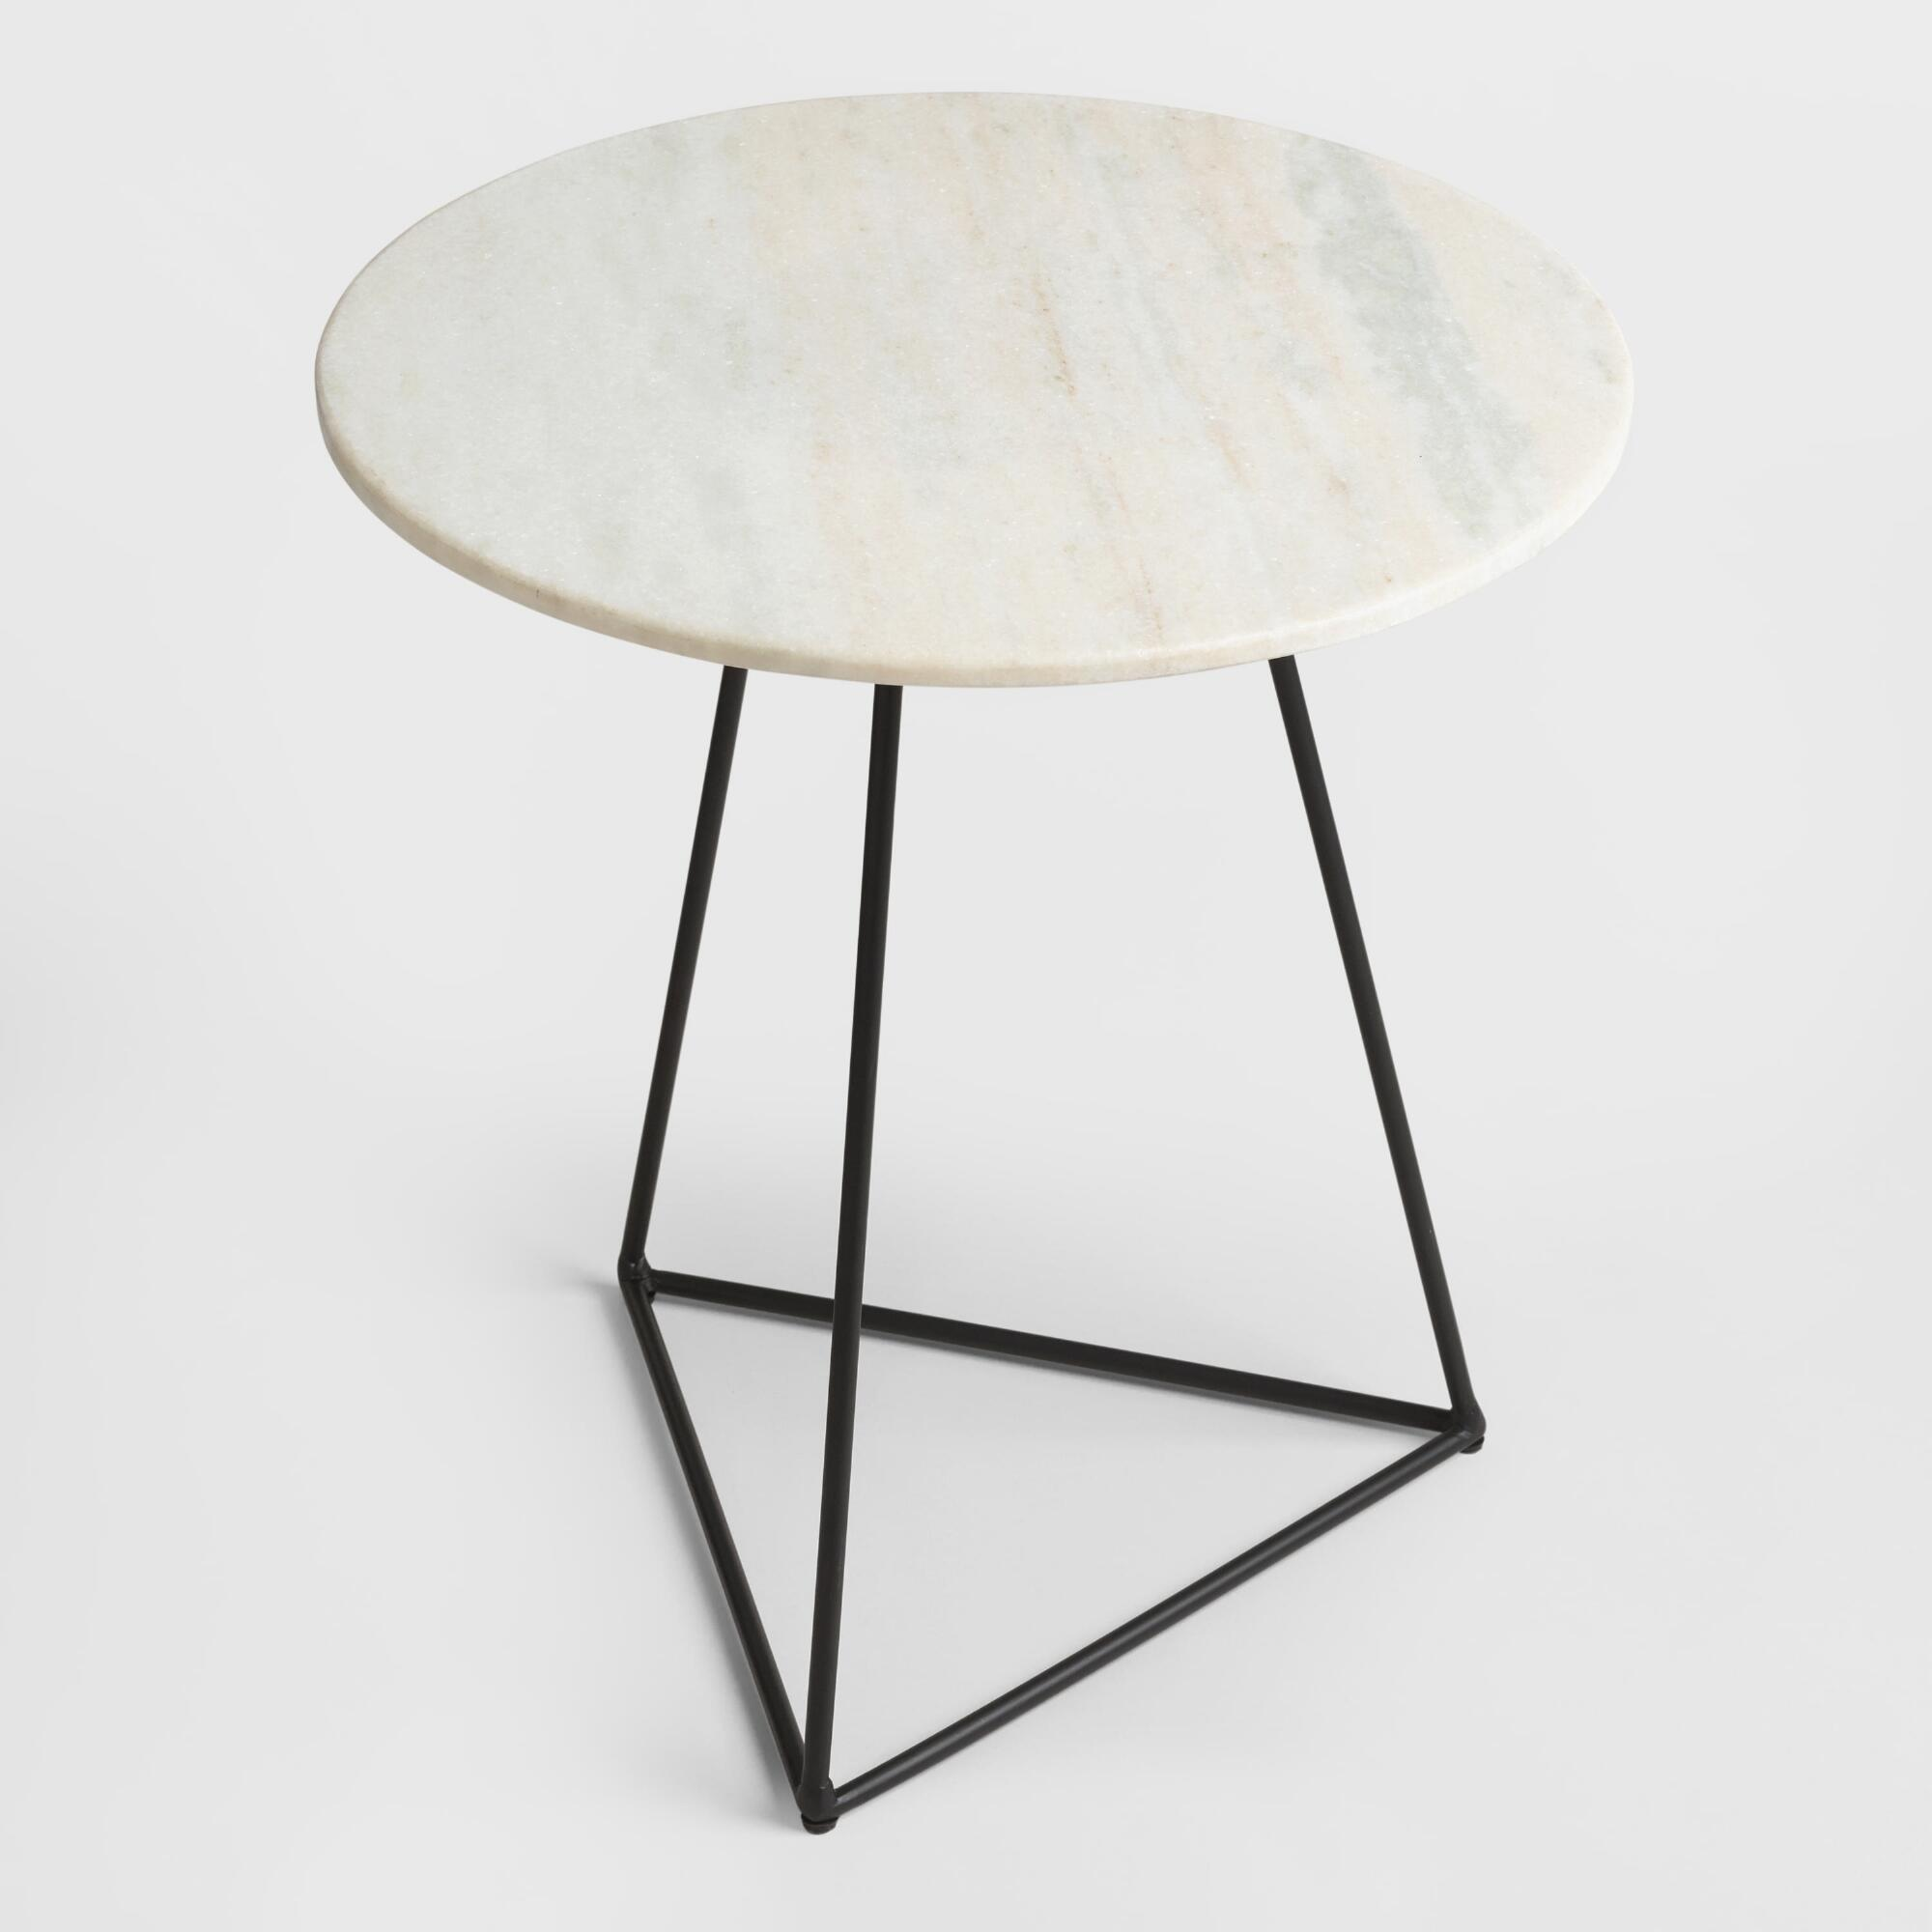 white marble and metal round accent table world market products black coffee toronto nautical flush mount light industrial gloss nest tables wood dining room furniture large